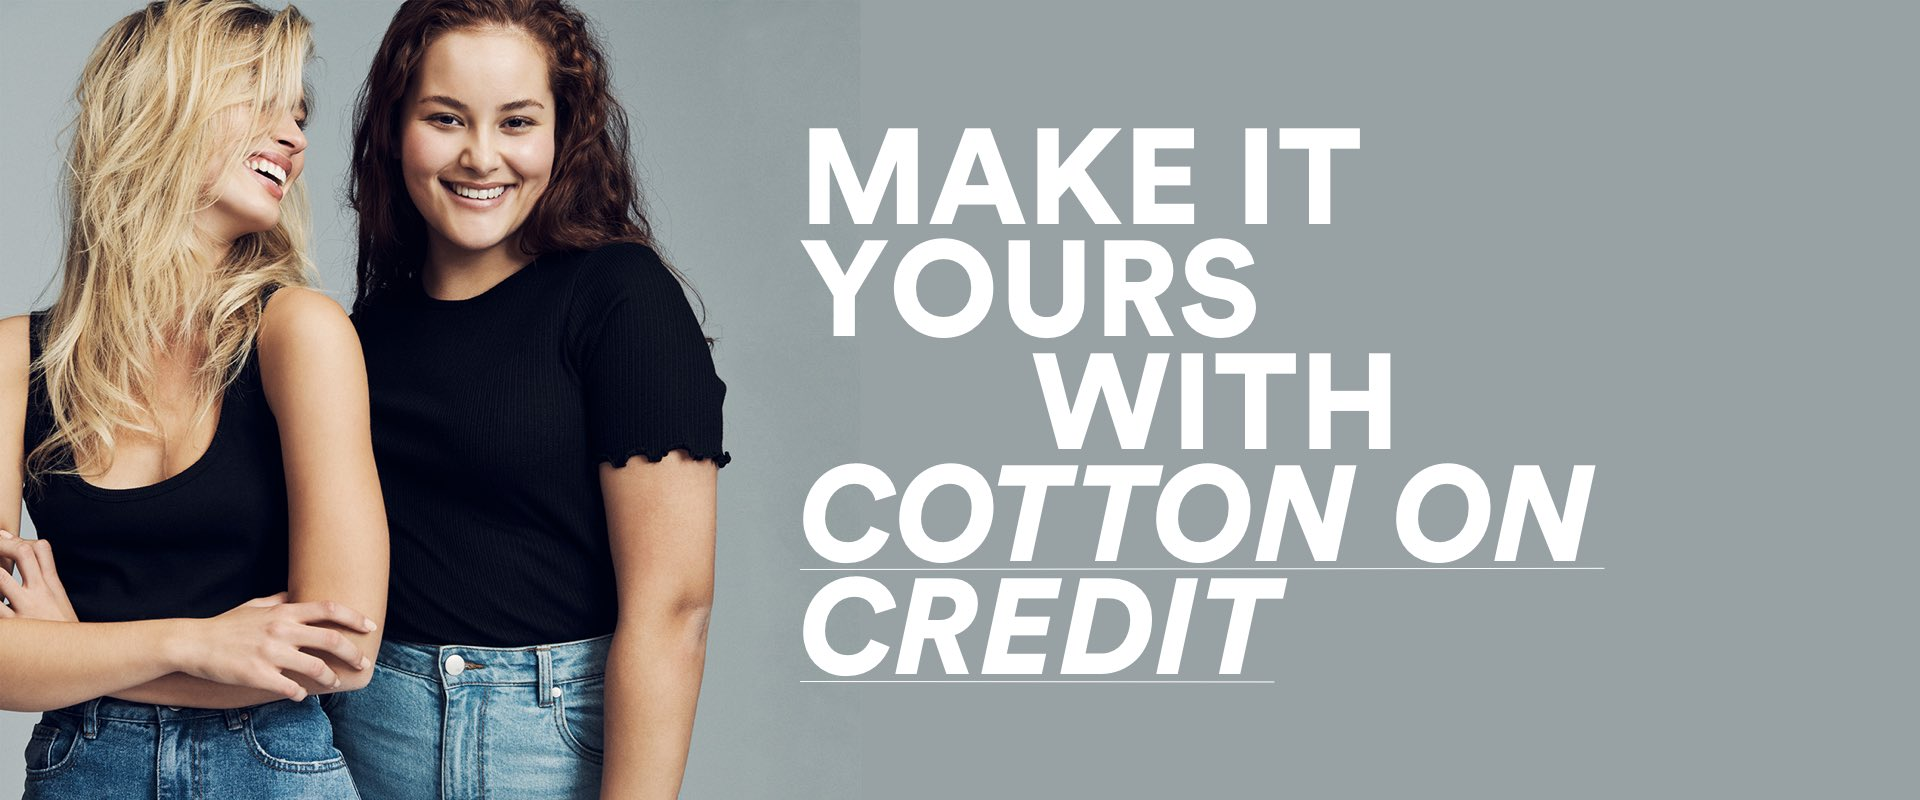 Make it yours with Cotton On Credit.